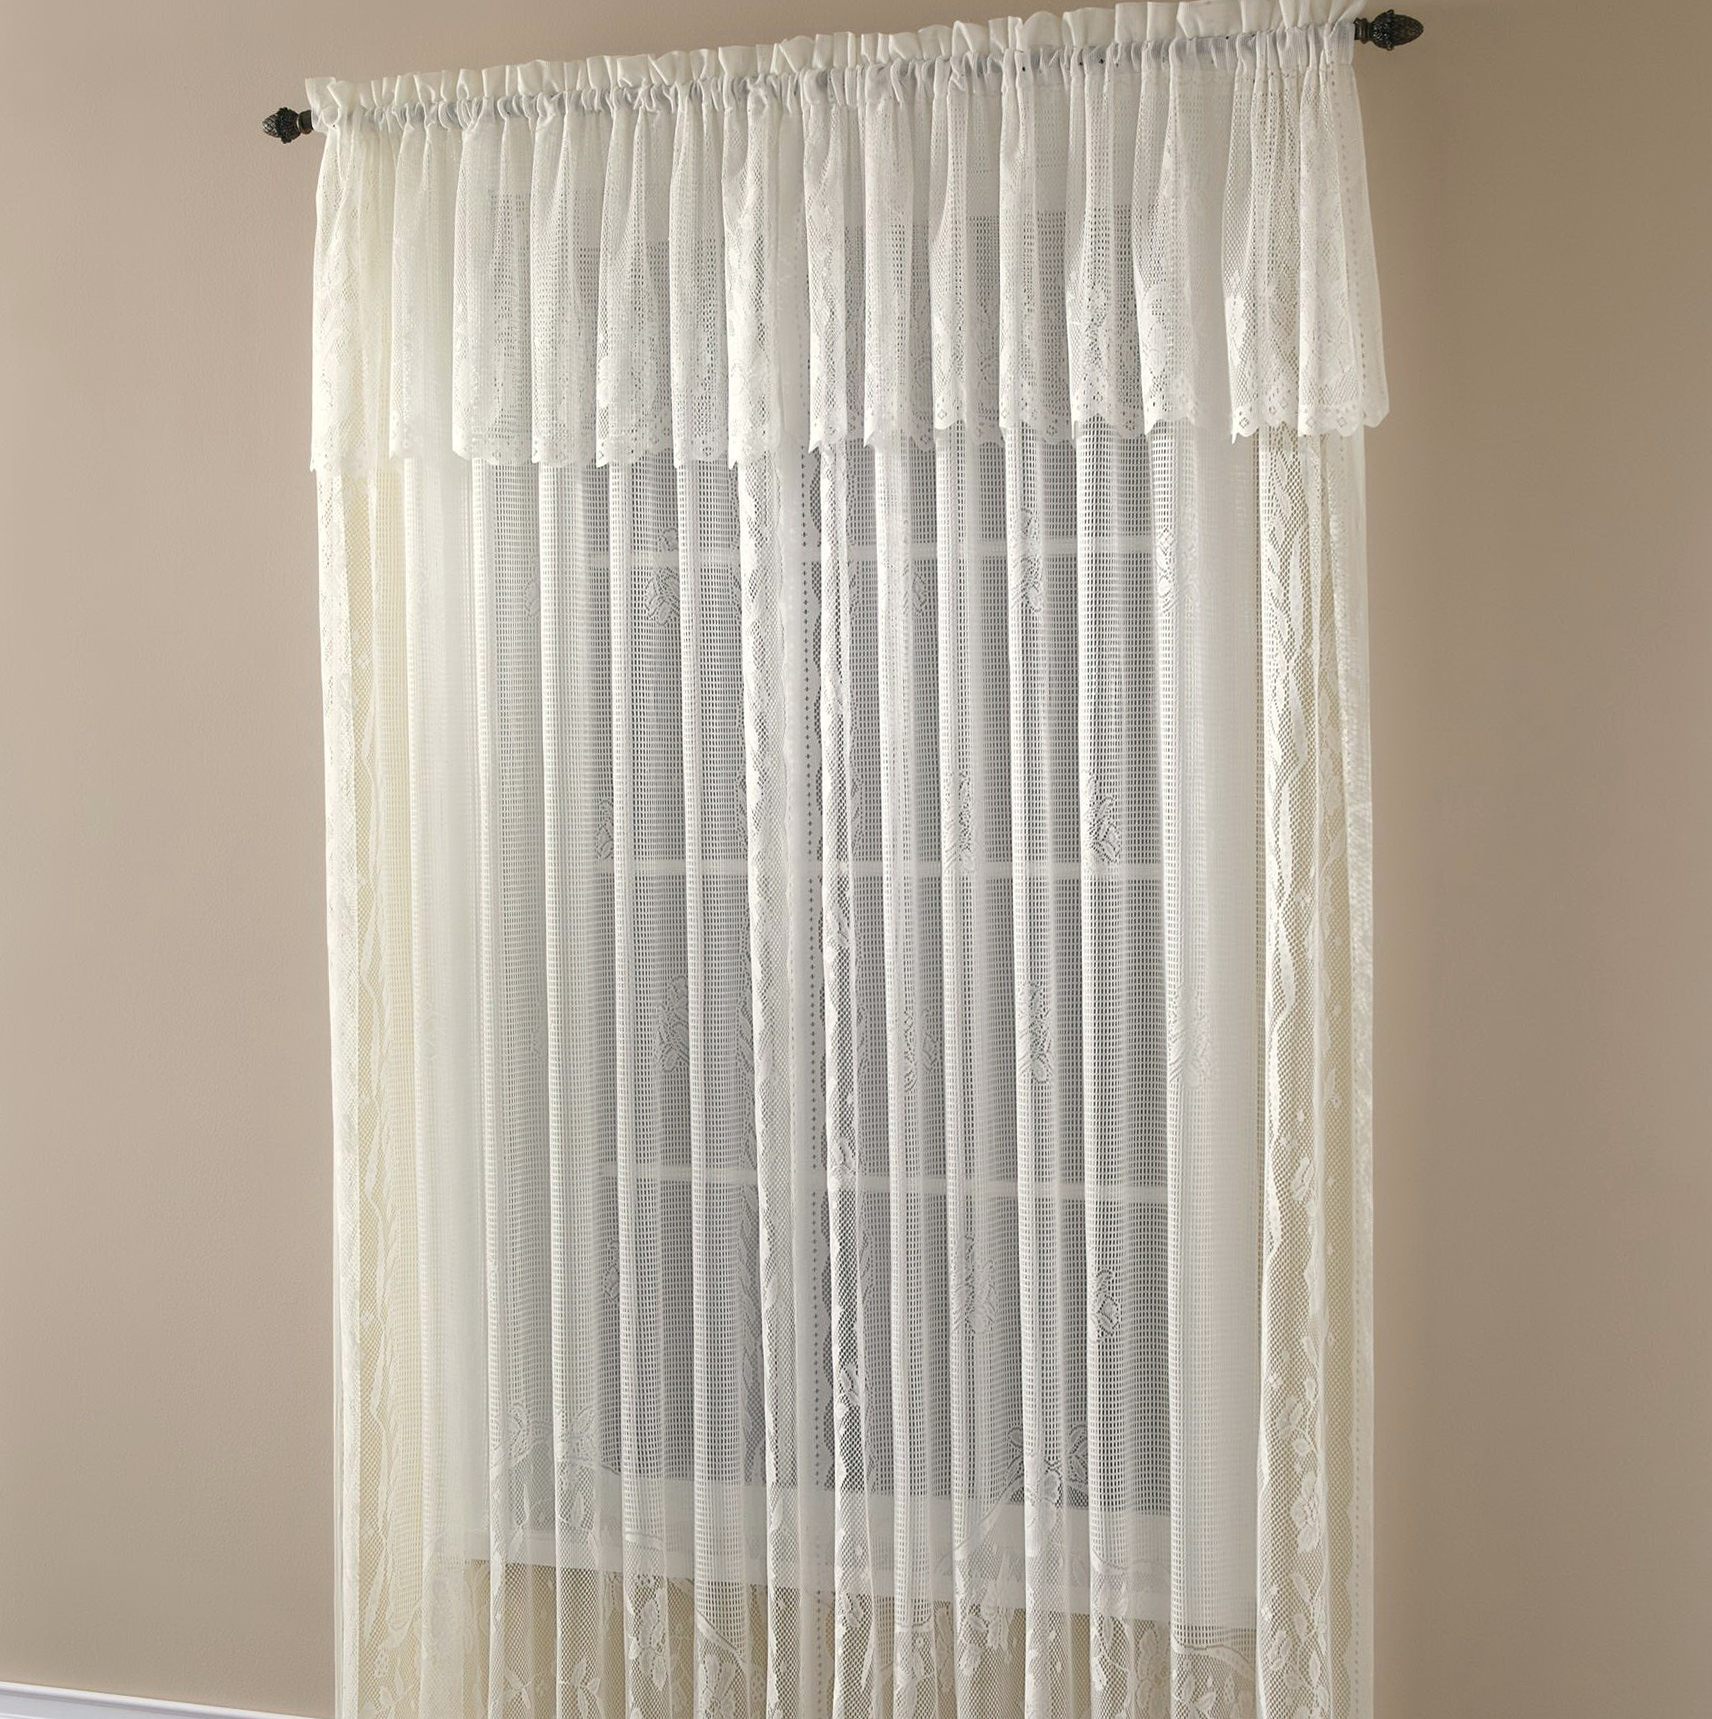 Curtains with valance attached